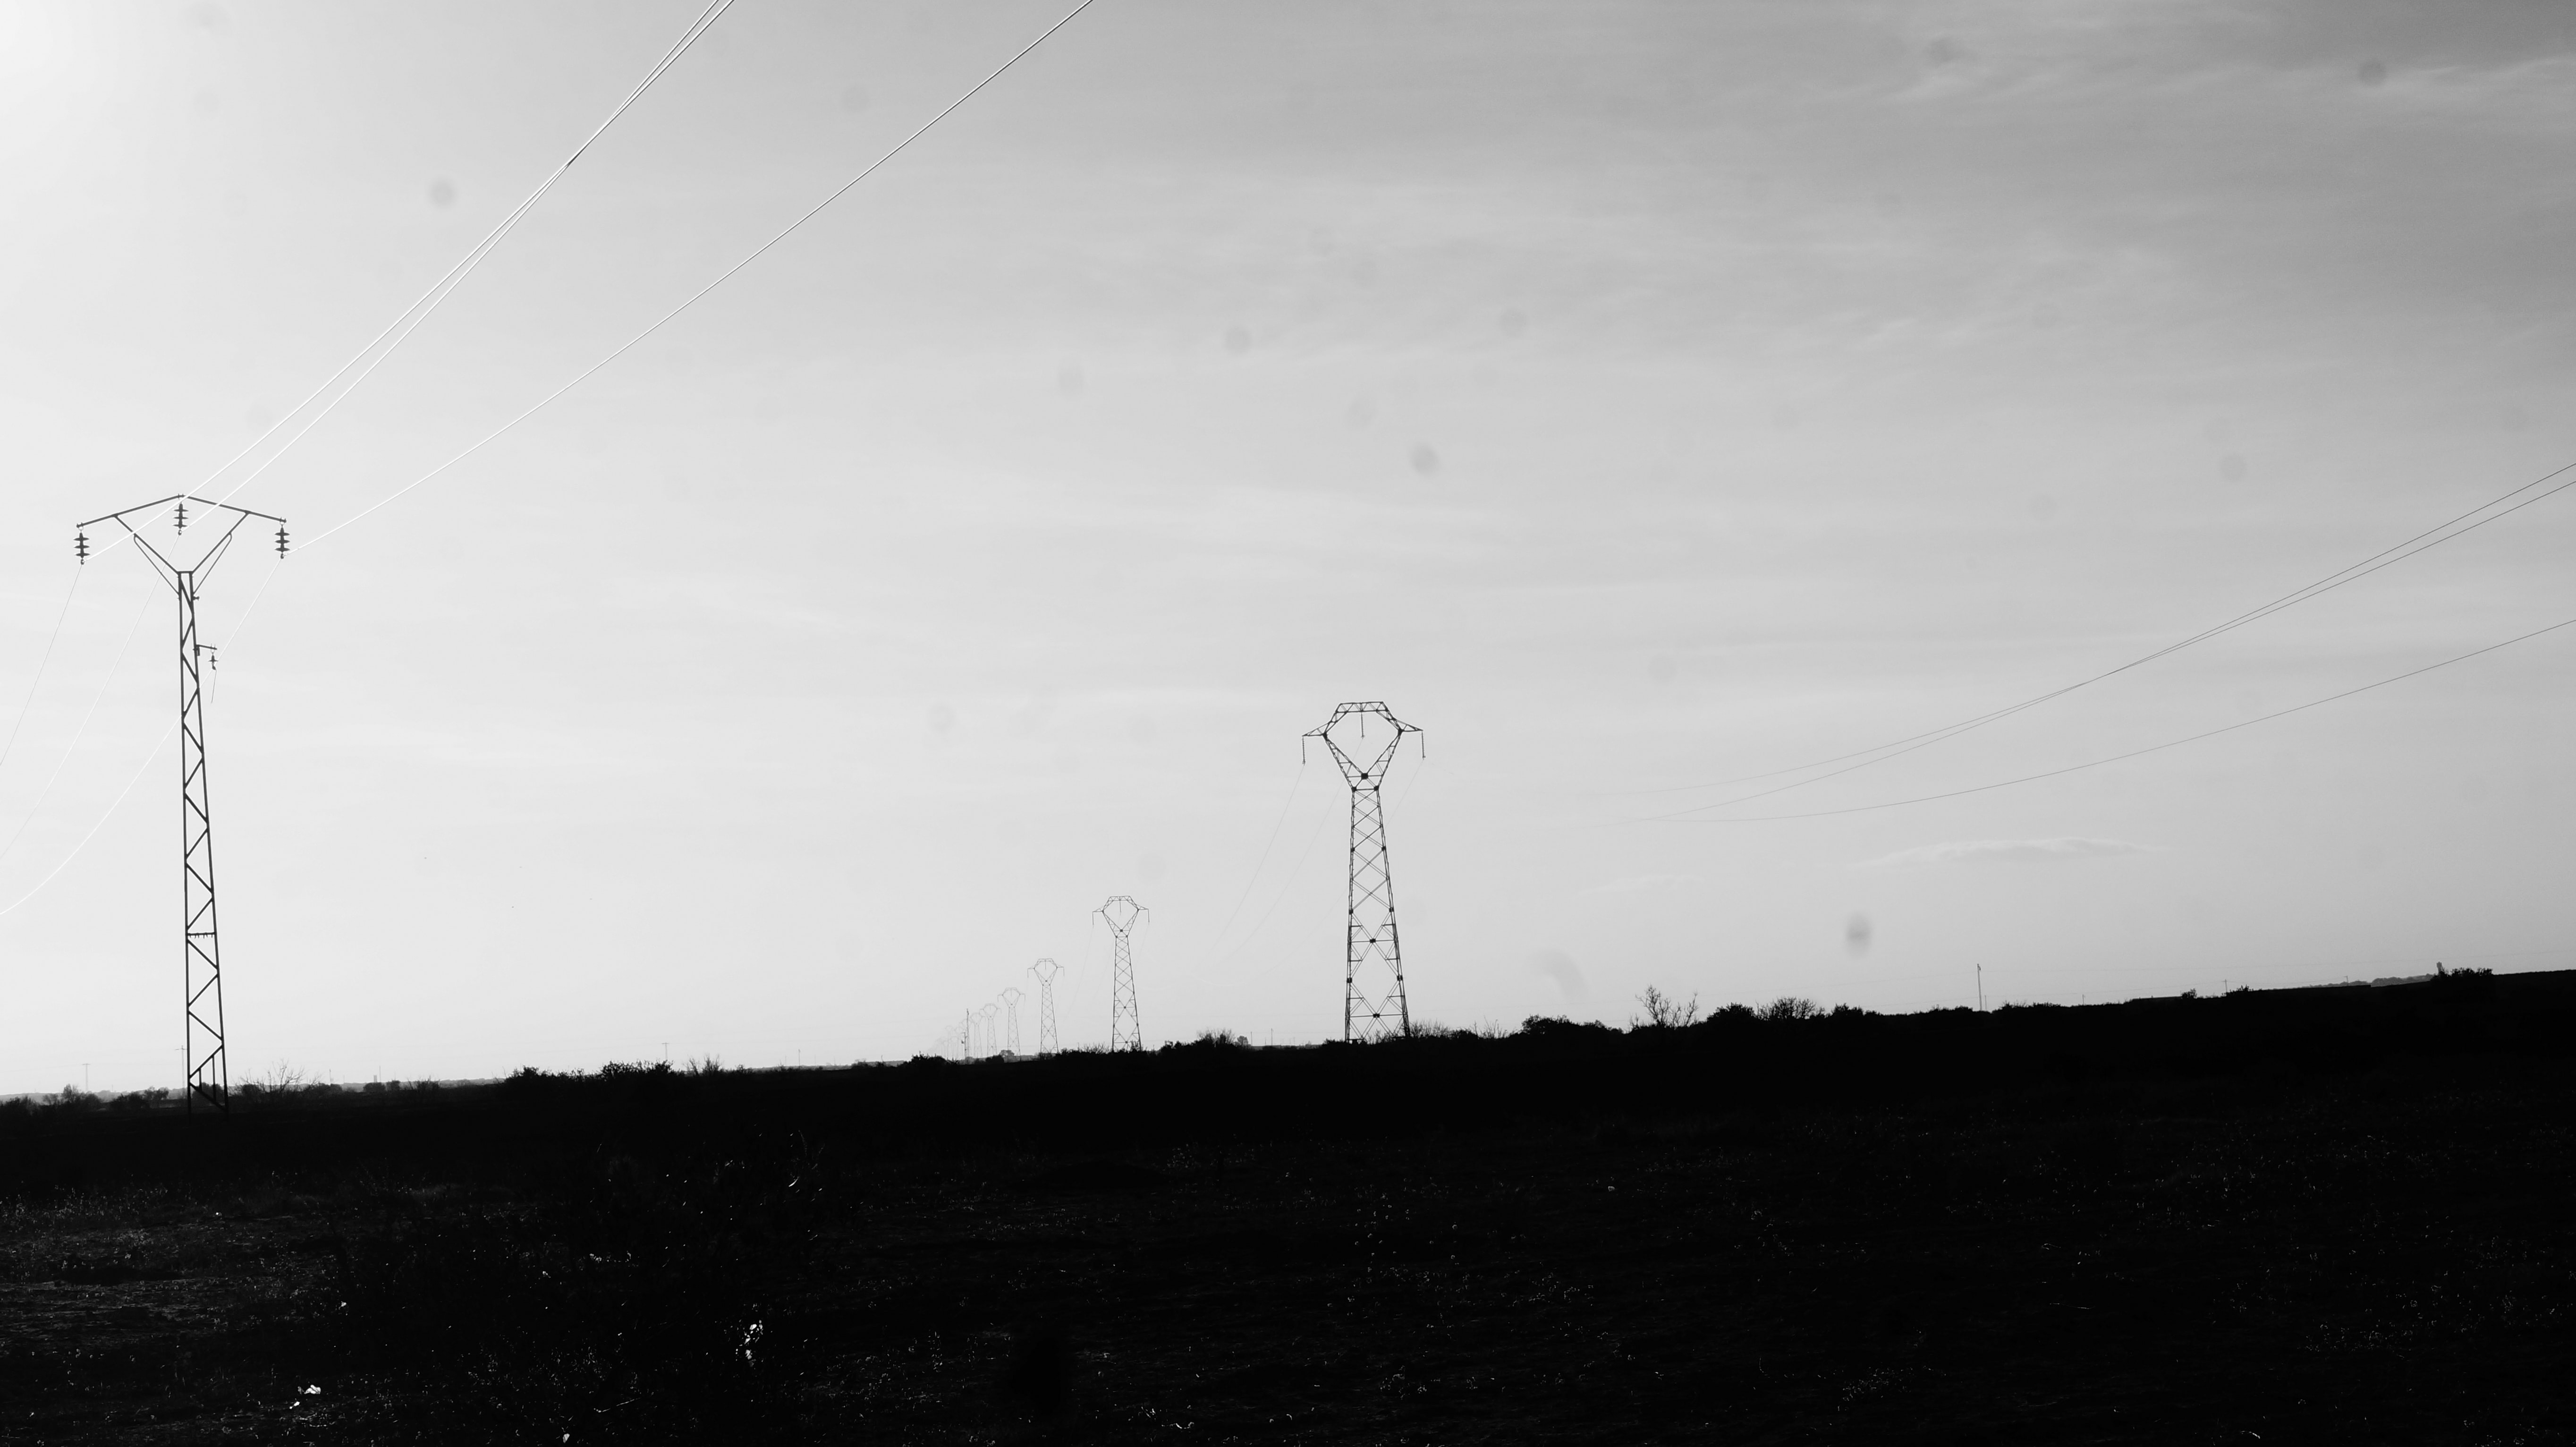 silhouette photo of transmission network